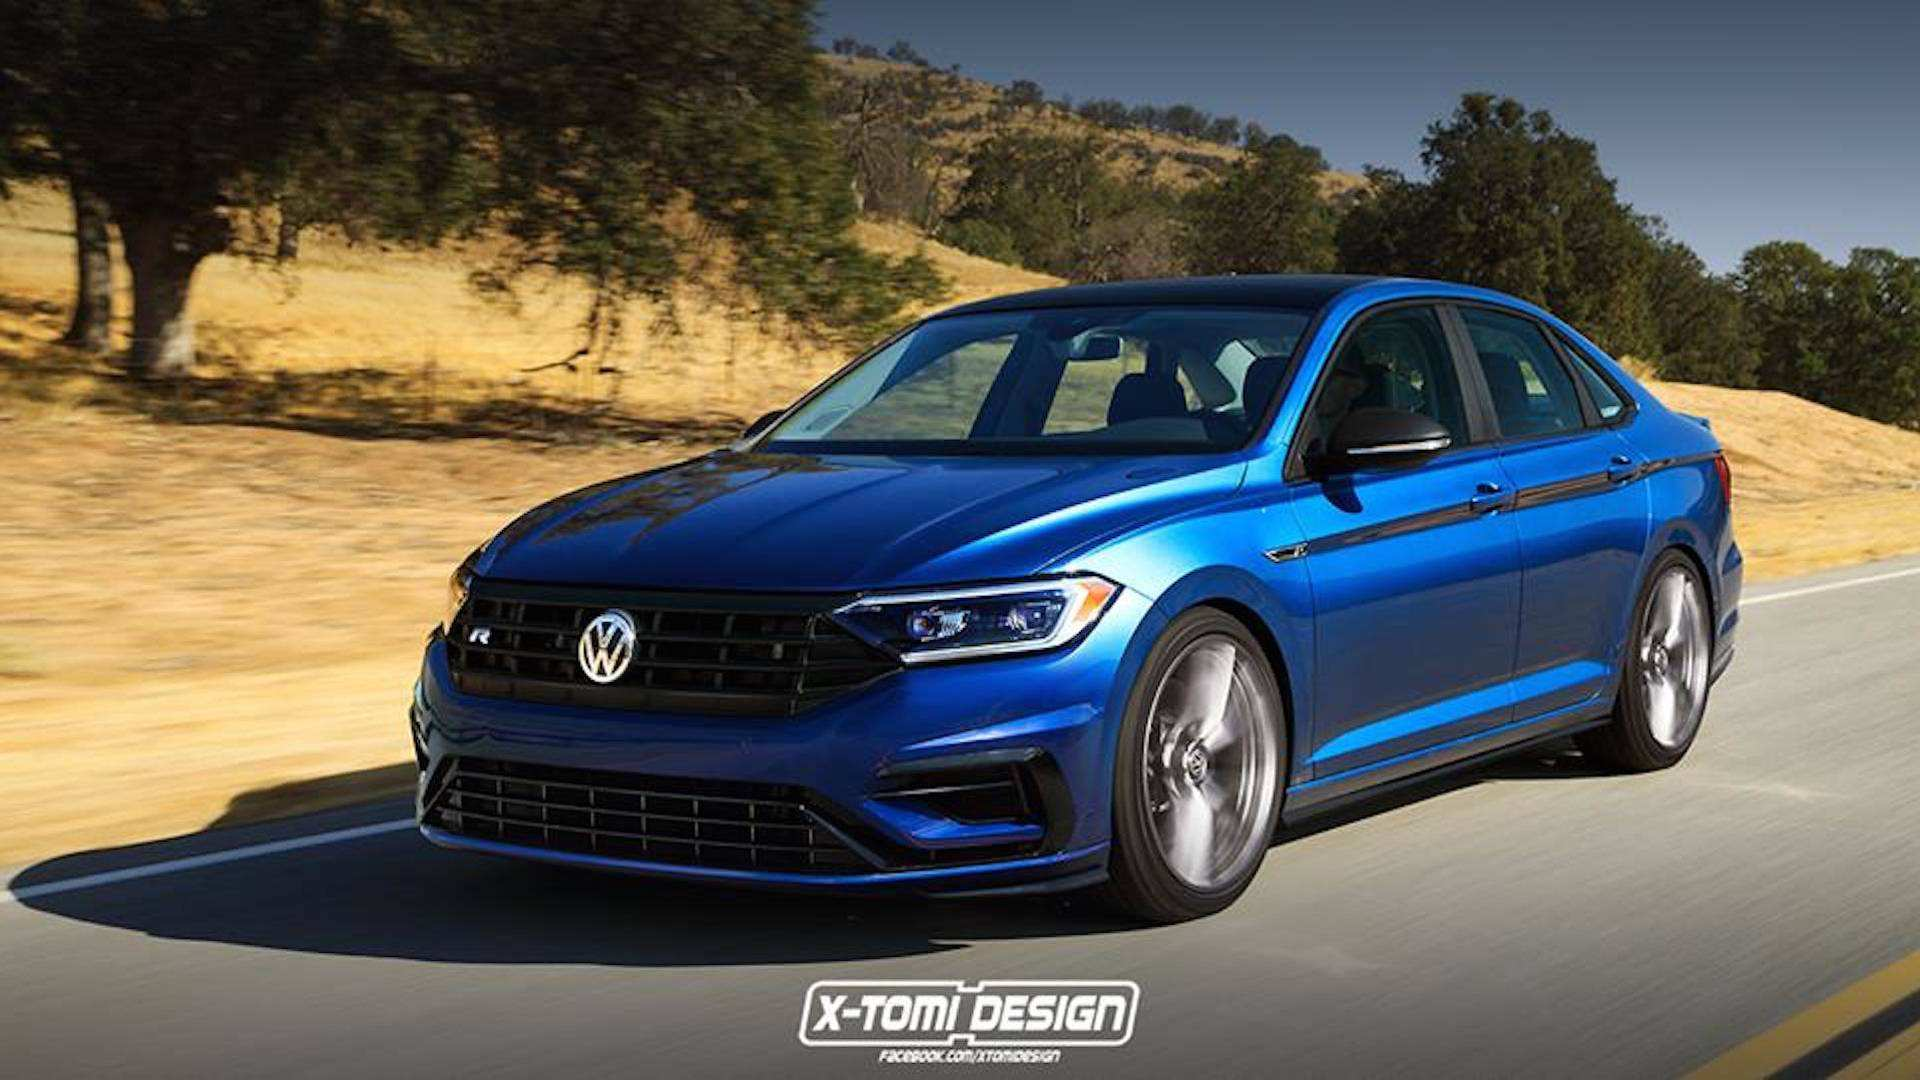 72 Gallery of 2019 Vw Jetta Spy Shots Concept with 2019 Vw Jetta Spy Shots